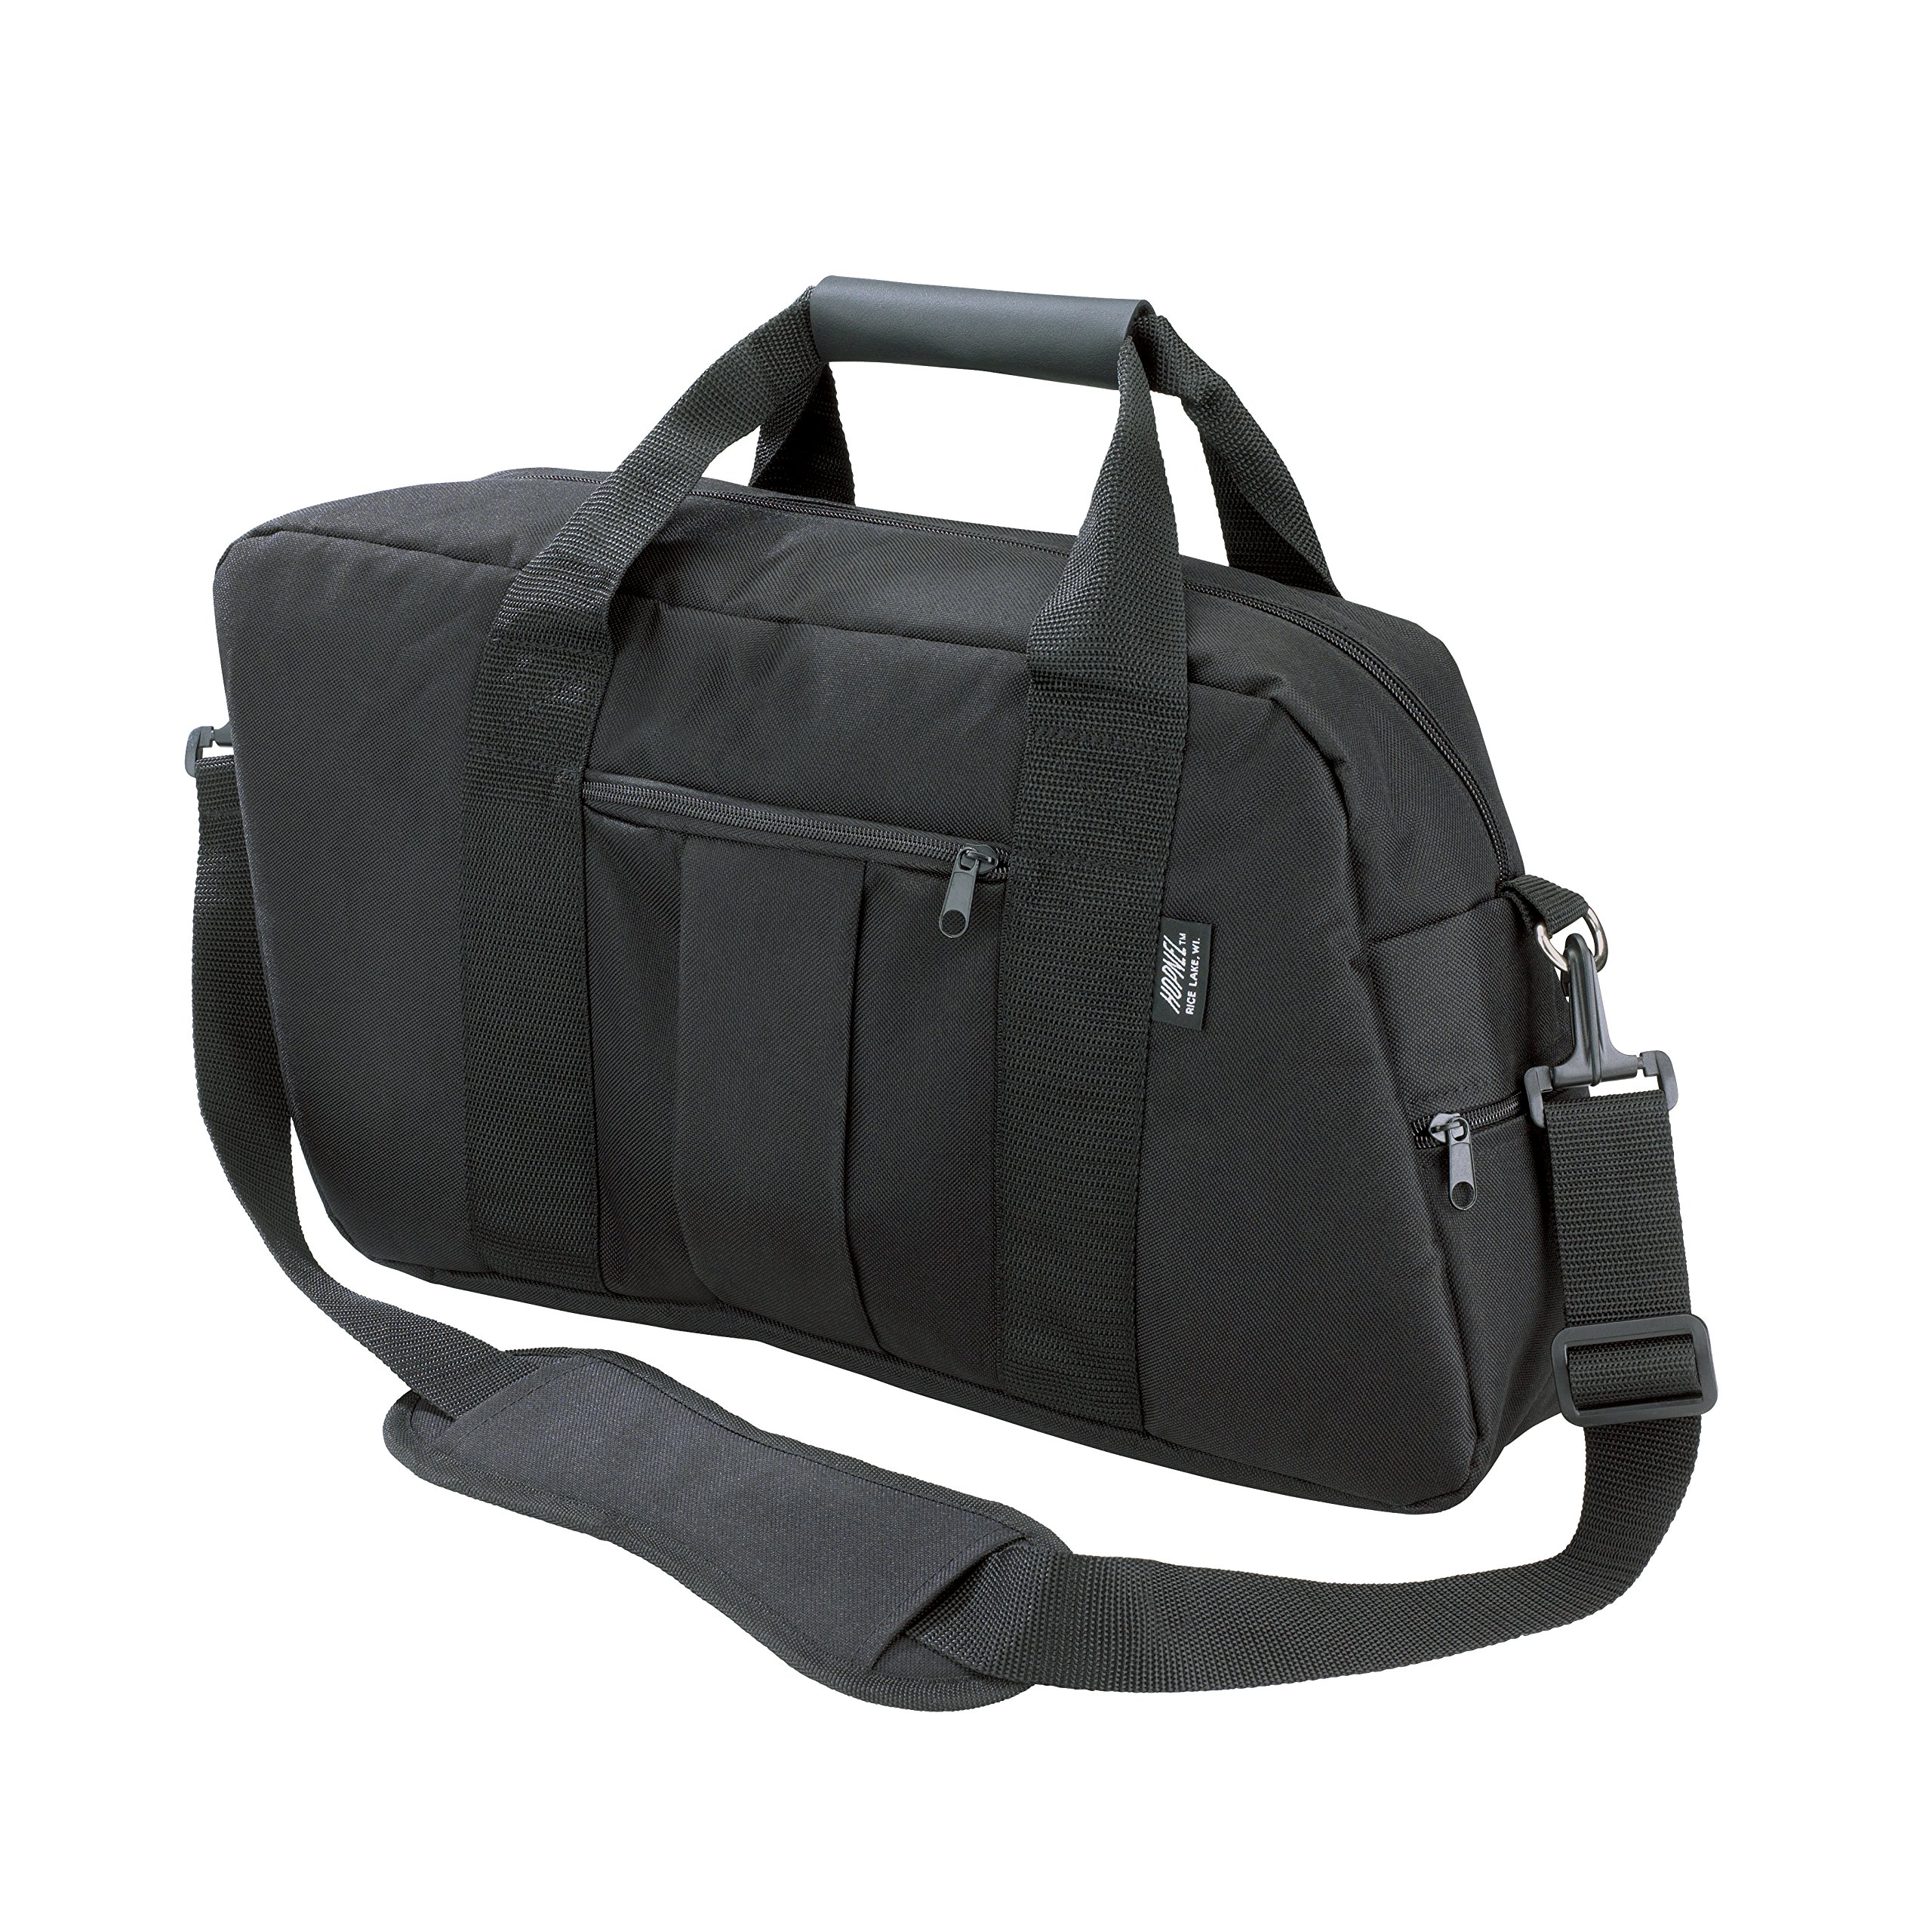 Hopnel HDKC Large King Kooler Saddlebag